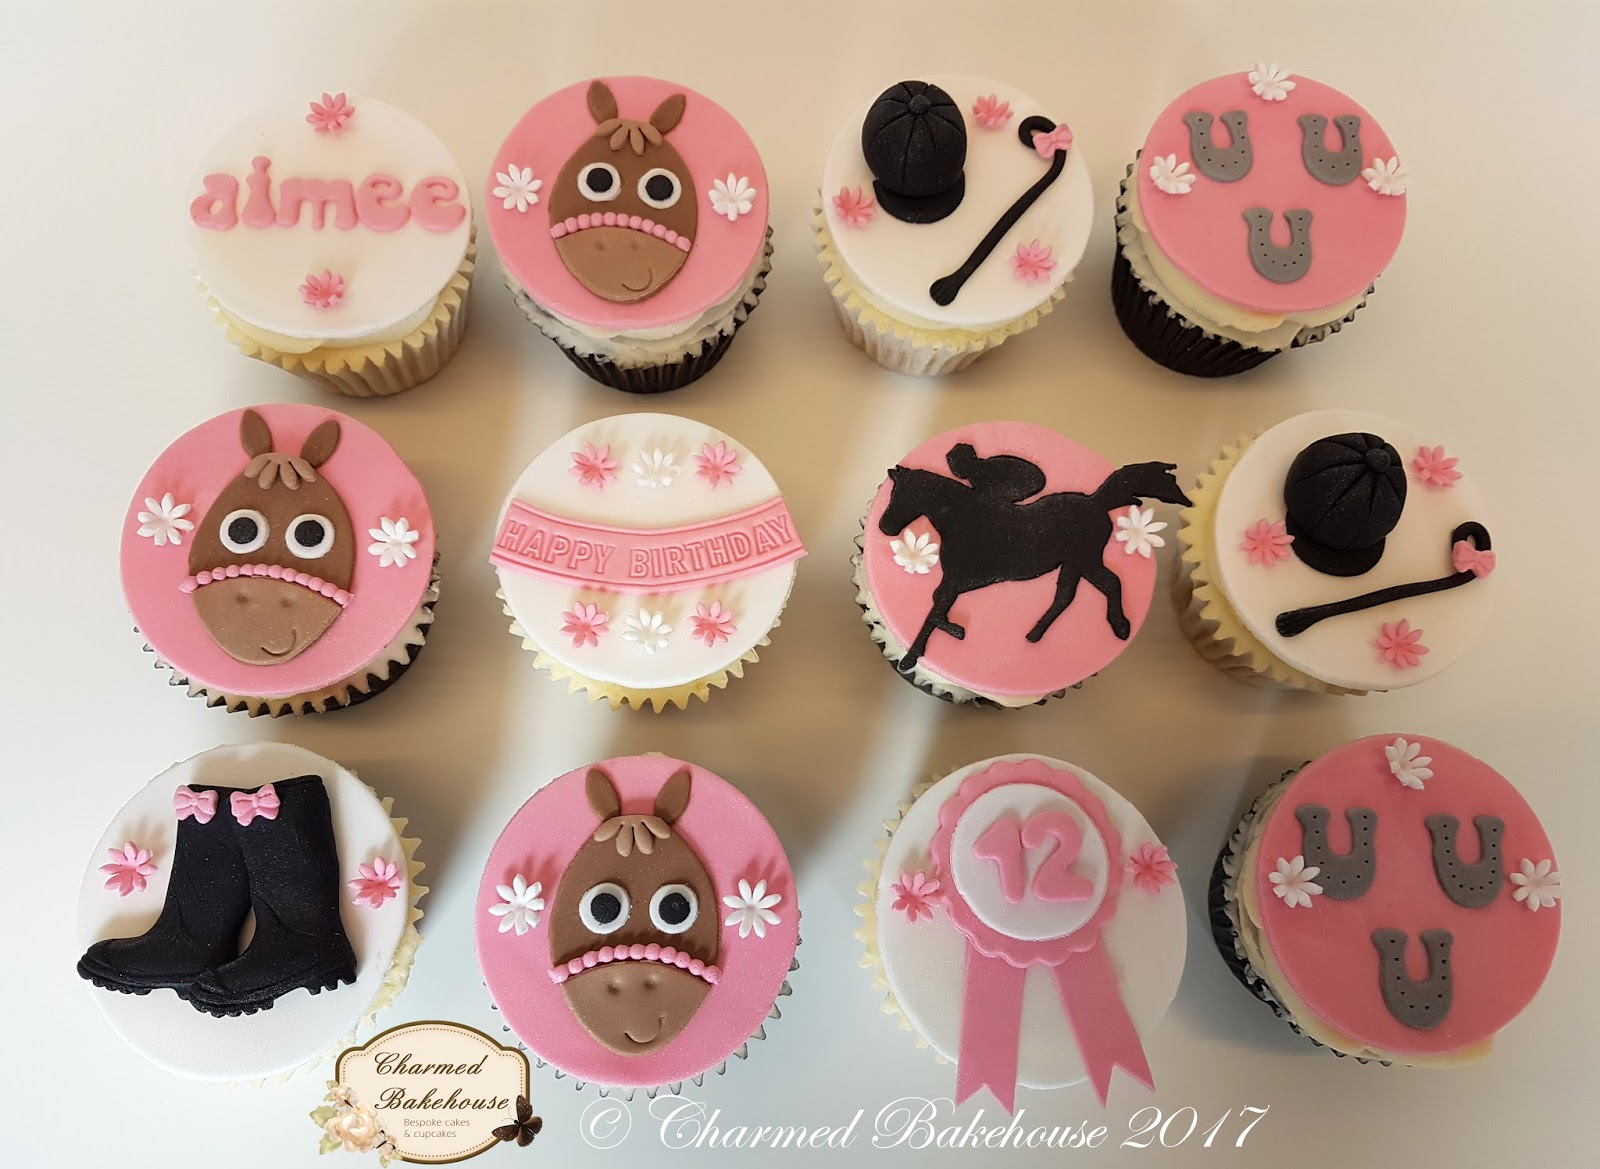 Horse Riding Themed Cupcakes